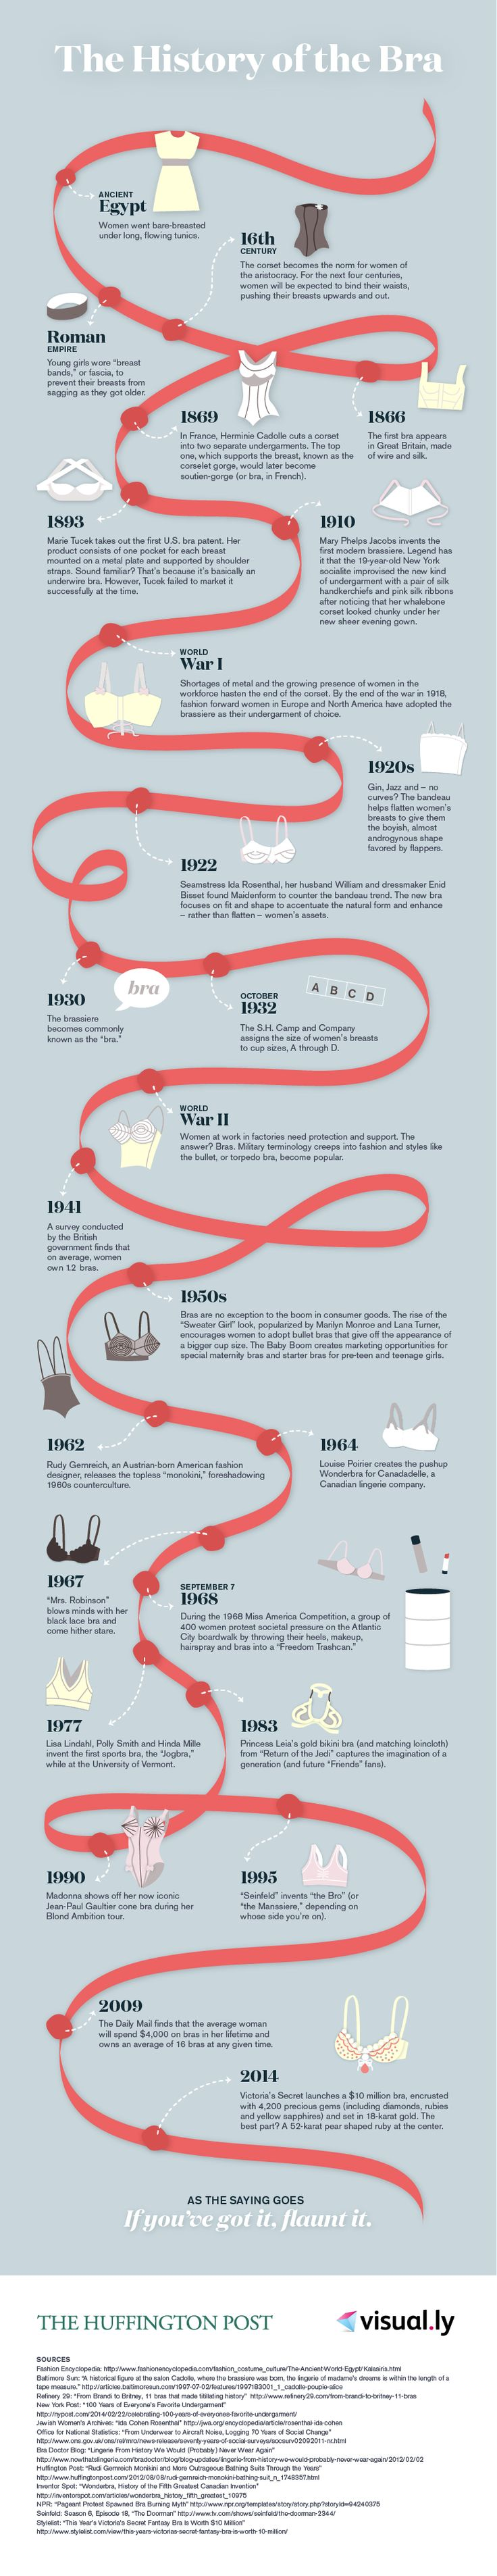 Infographic on the history of the bra